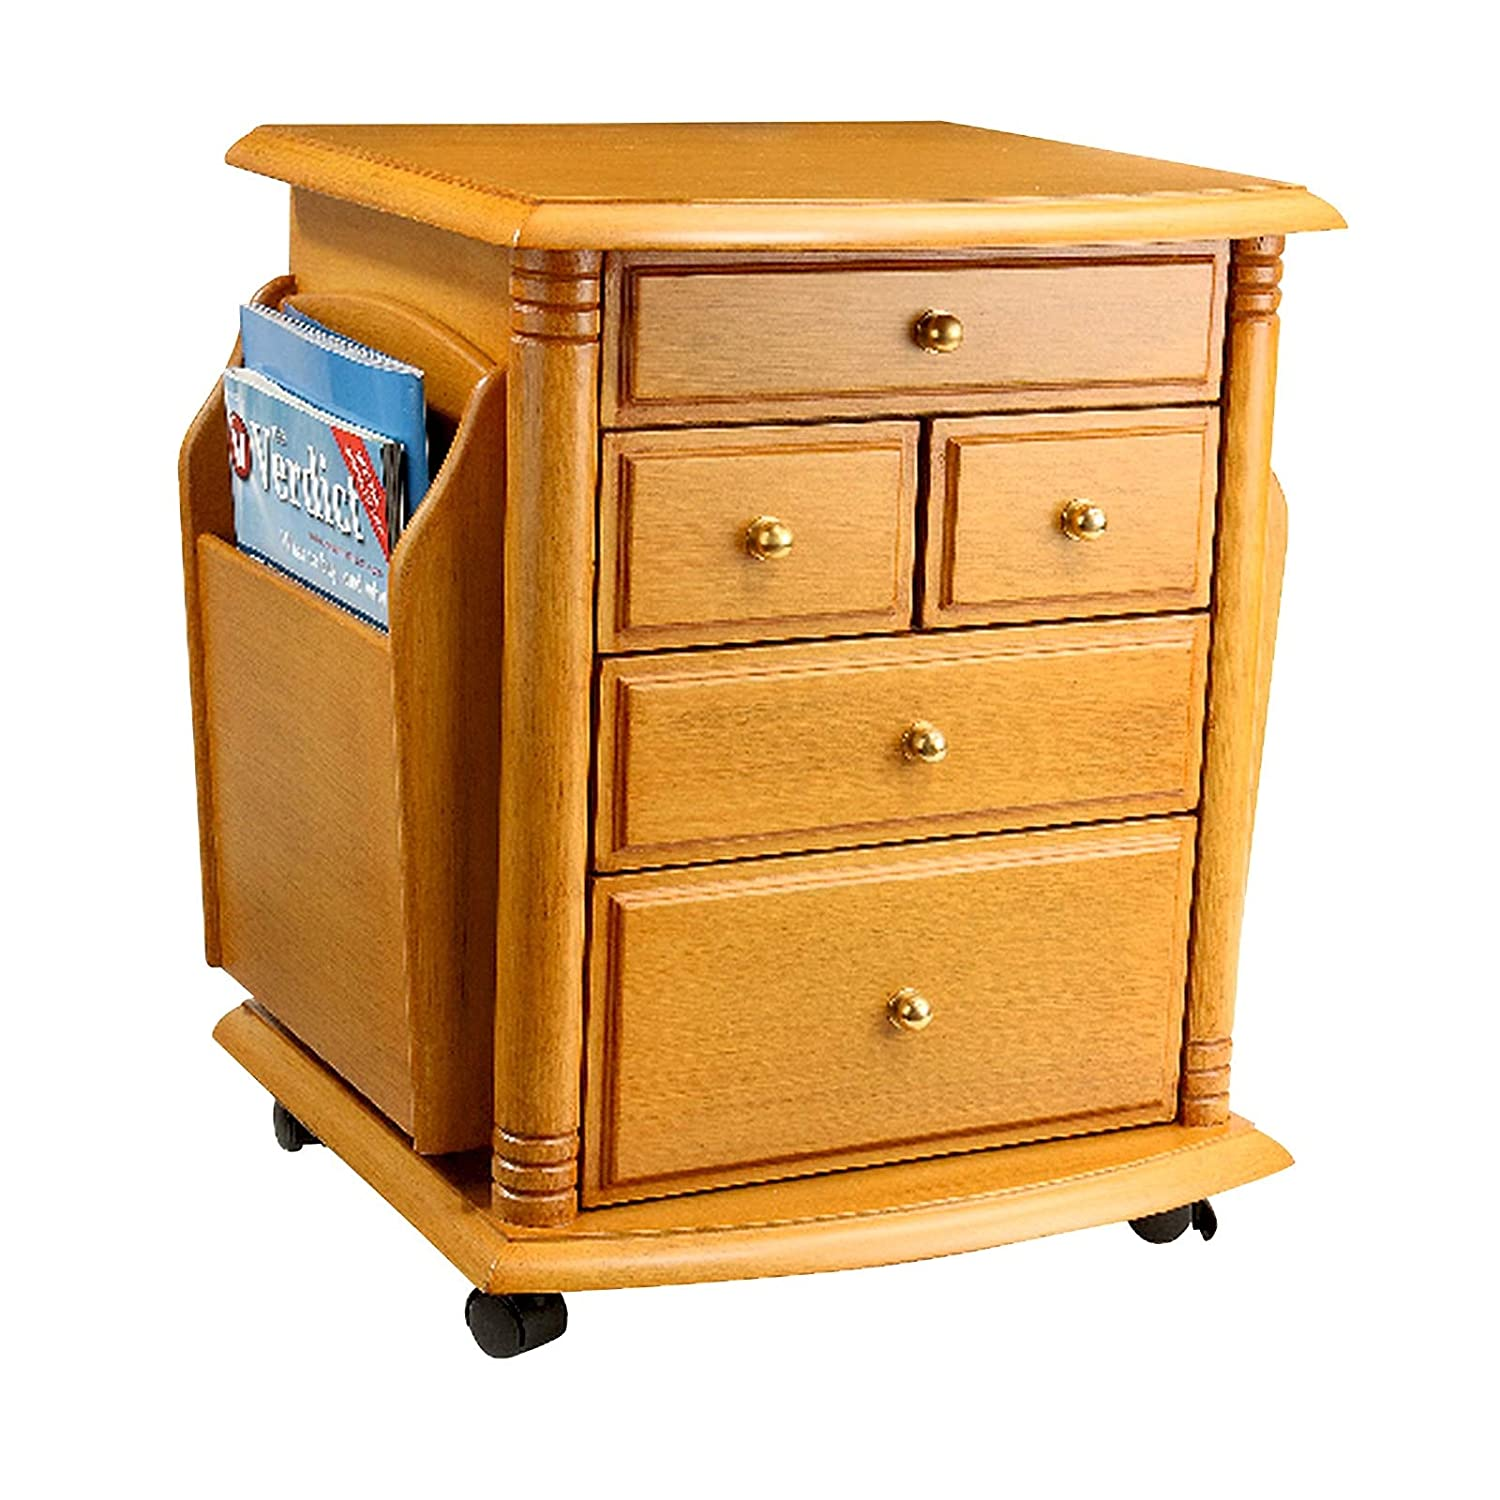 Burwells Home Magazine Rack Side Table Corner Storage Unit 5 Drawers Castors Wheels Mahogany